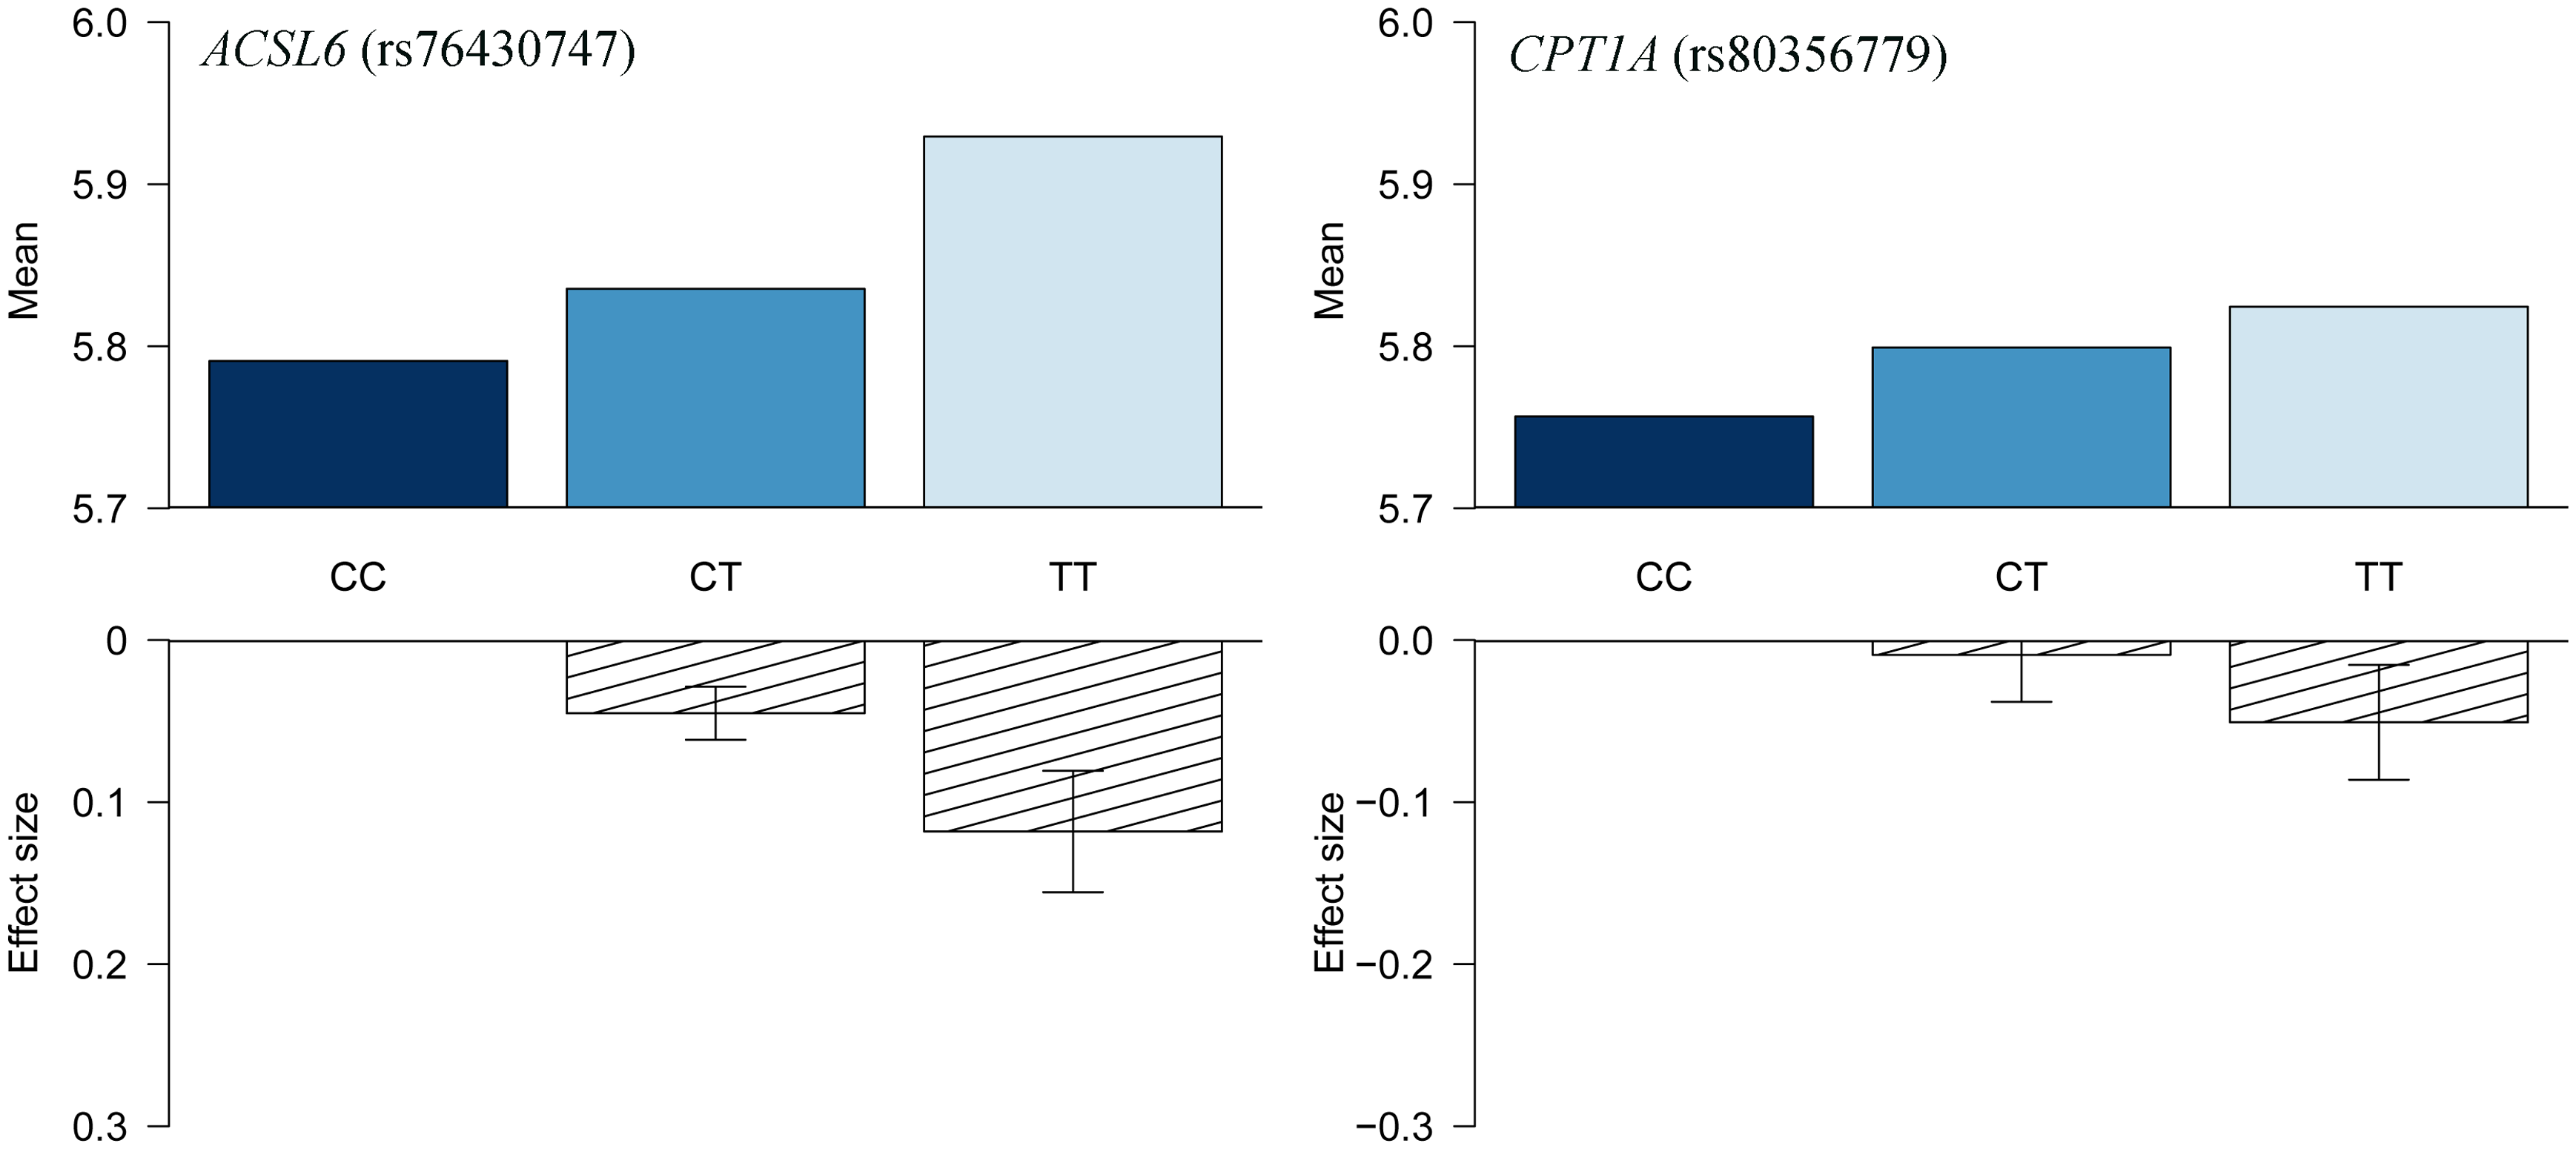 HbA1c association for <i>ACSL6</i> (rs76430747) and <i>CPT1A</i> (rs80356779).